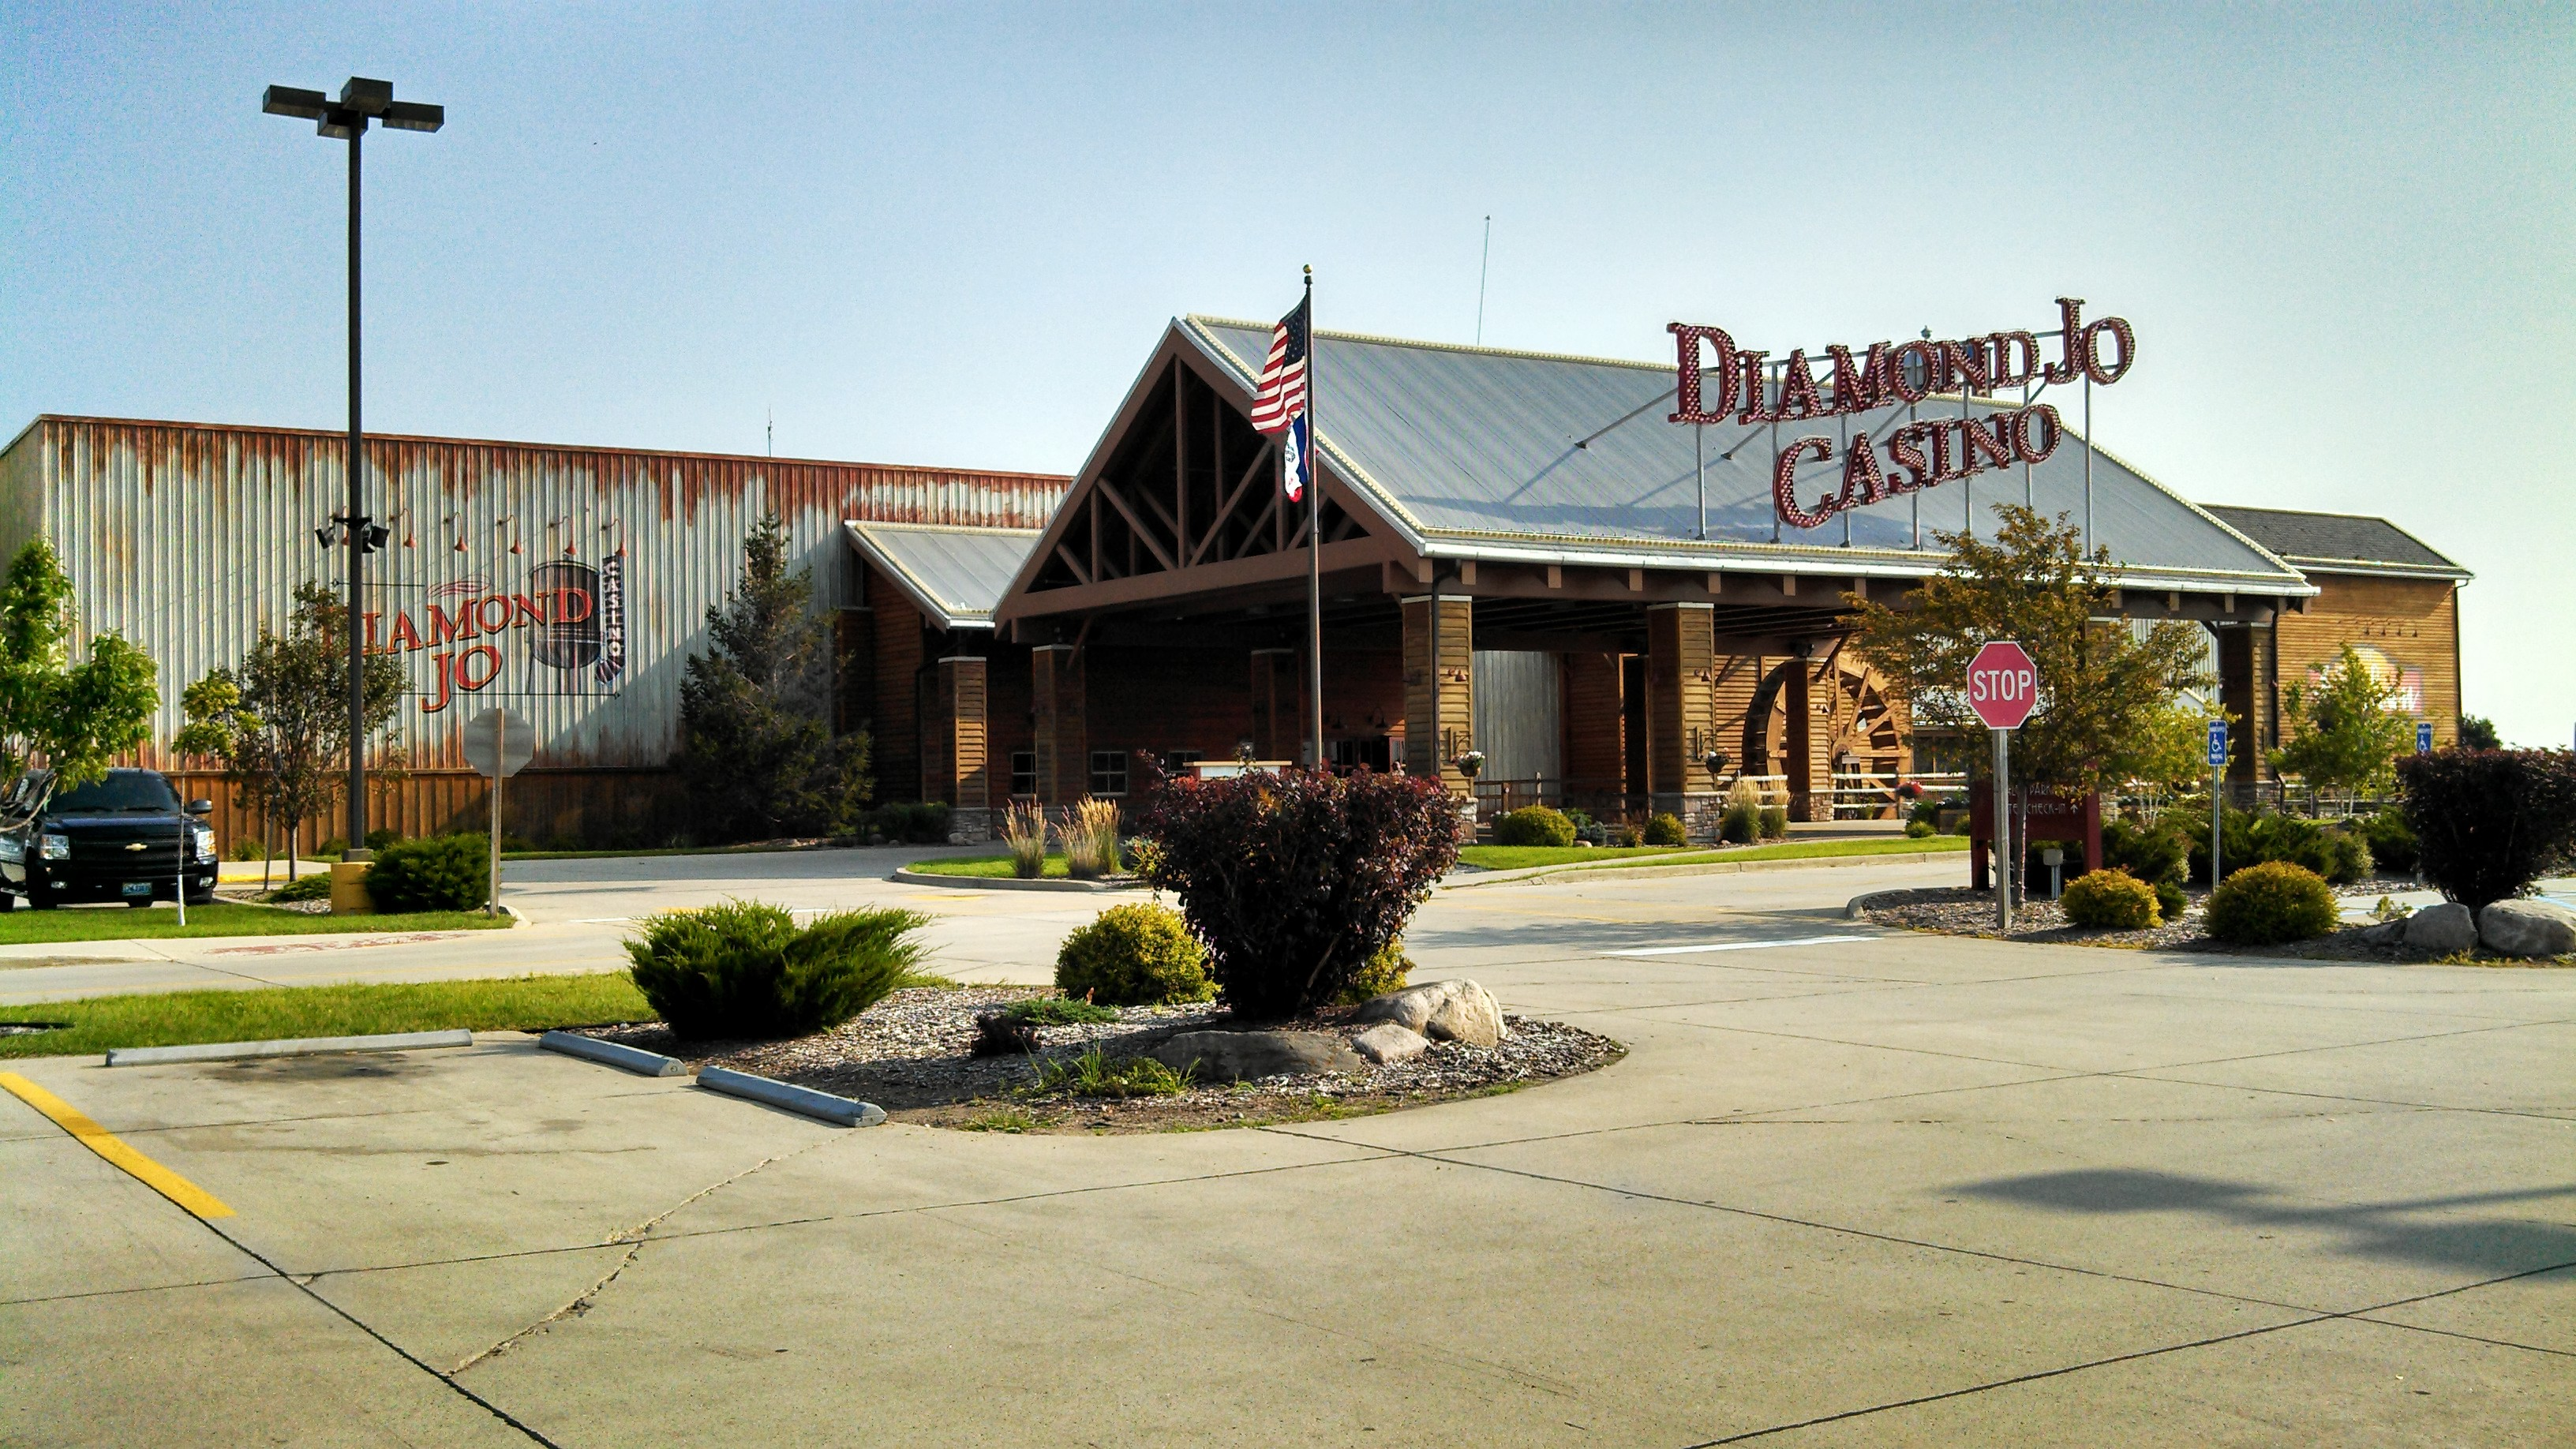 Diamond Jo Casino – Northwood